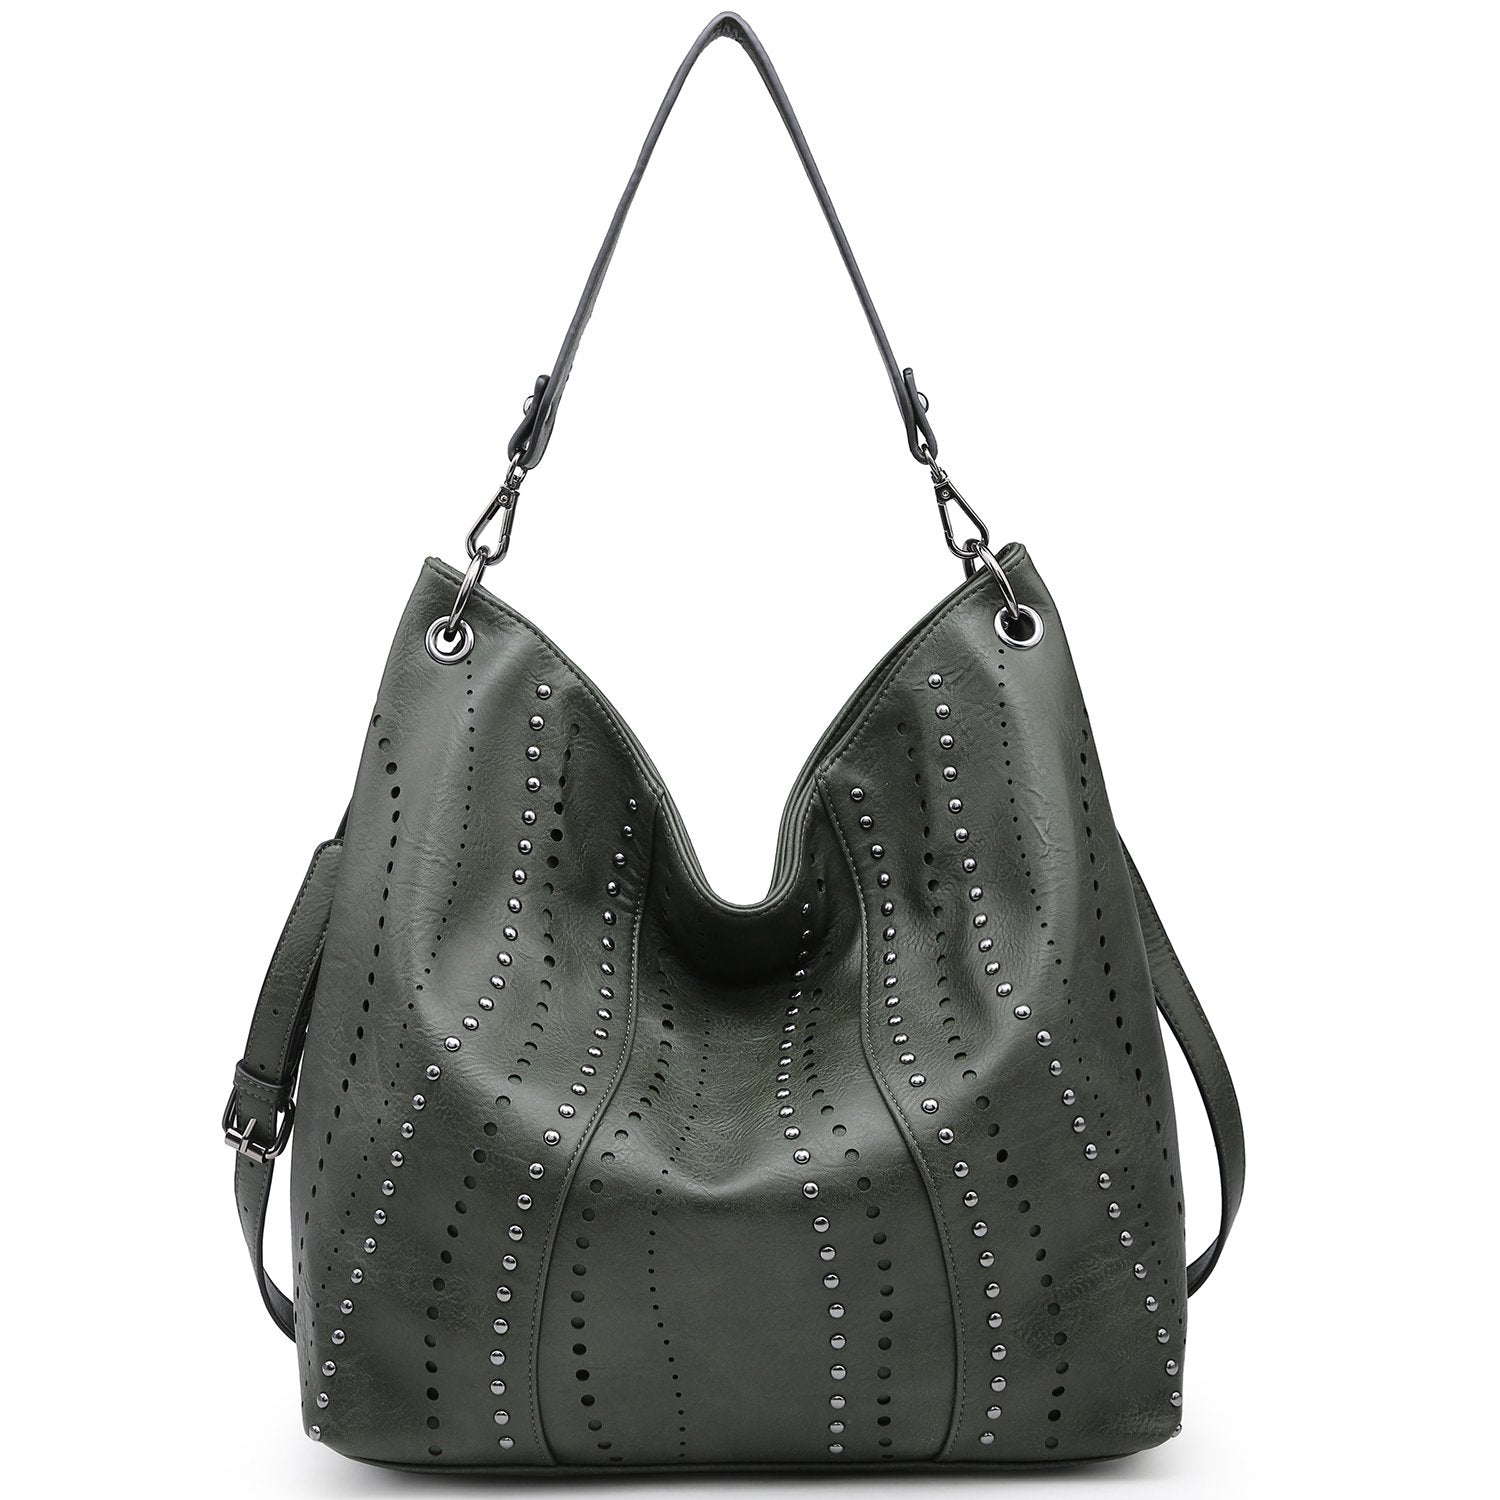 Studded Vintage Hobo Bag